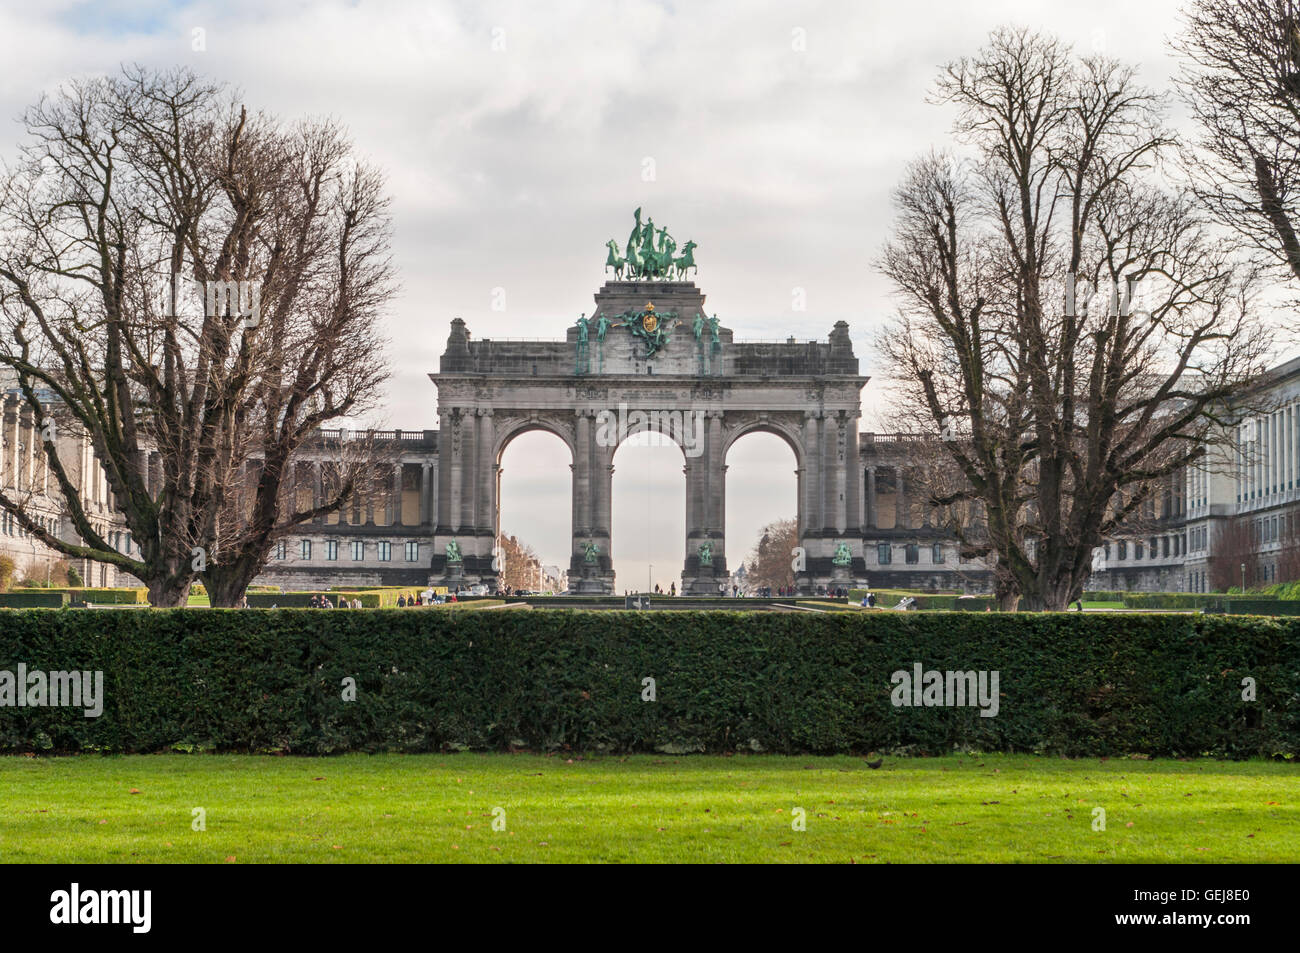 Neoclassical Arcade du Cinquantenaire triumphal arch in Brussels, Belgium. Erected 1905 as a monument of Belgian - Stock Image